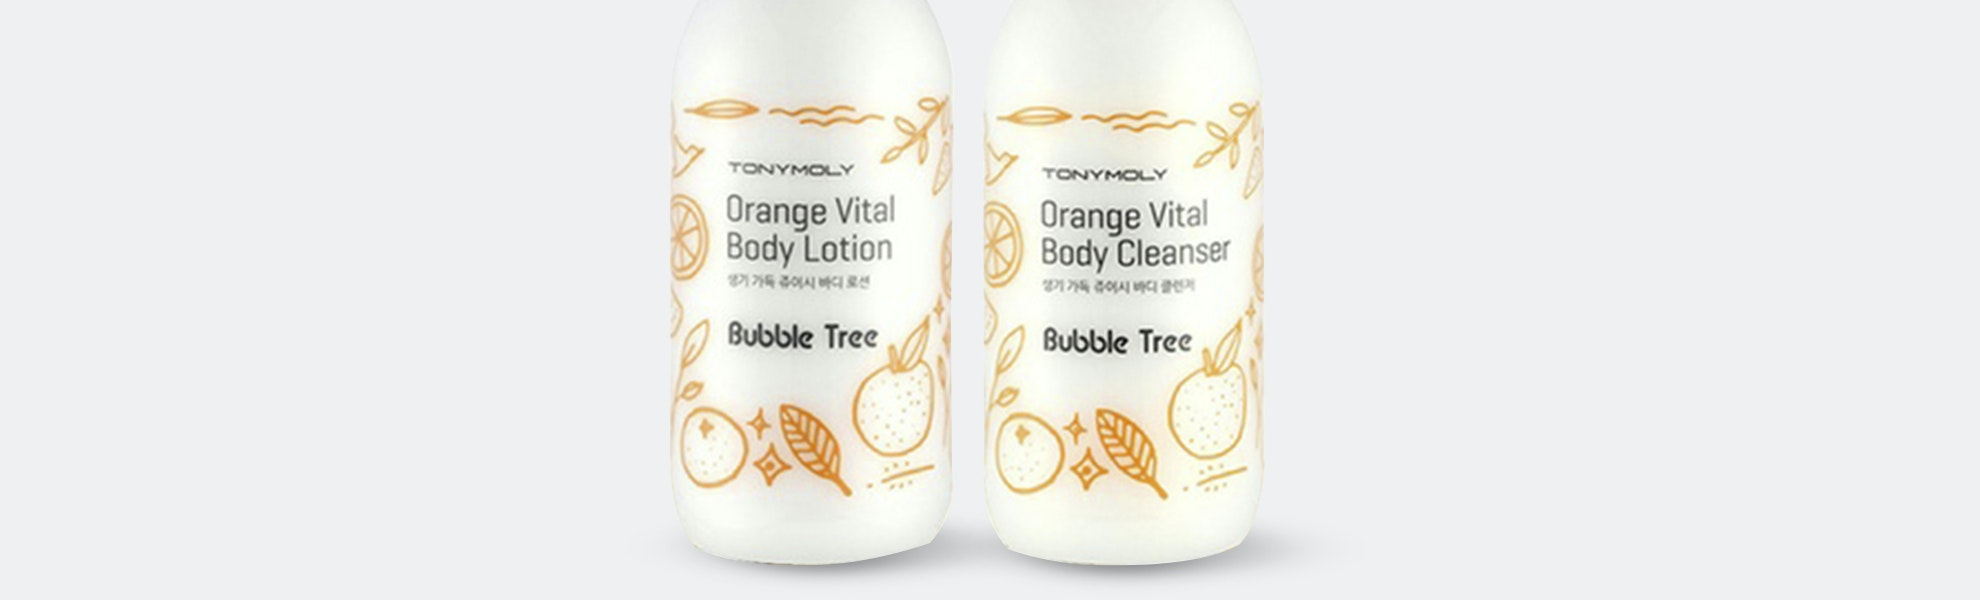 Tony Moly Orange Vital Body Cleanser & Lotion Set